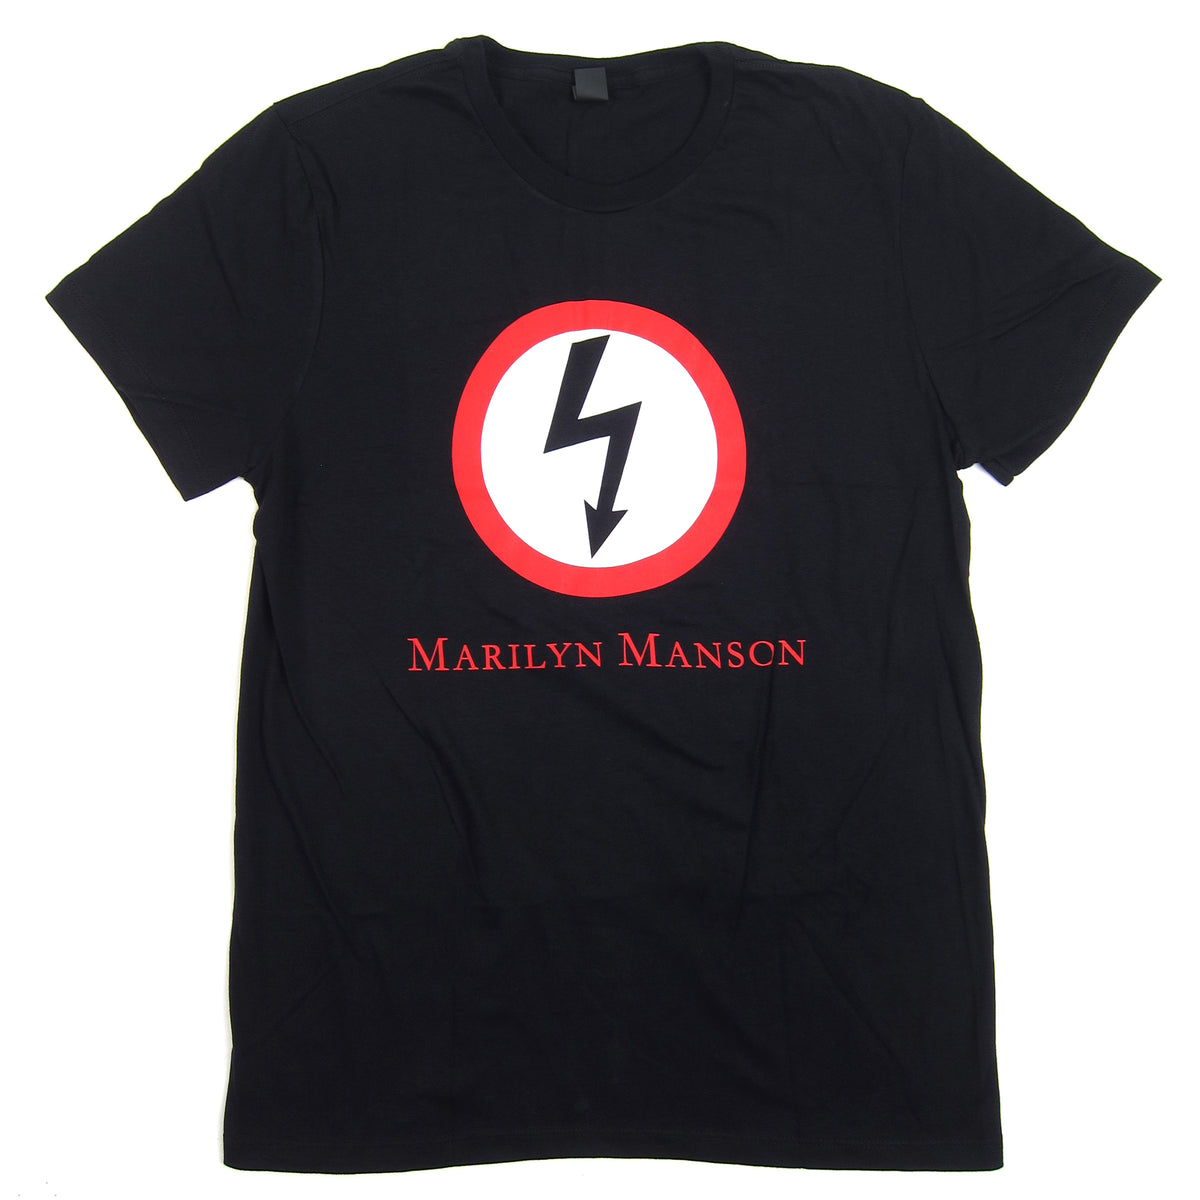 Marilyn Manson: Classic Bolt Shirt - Black